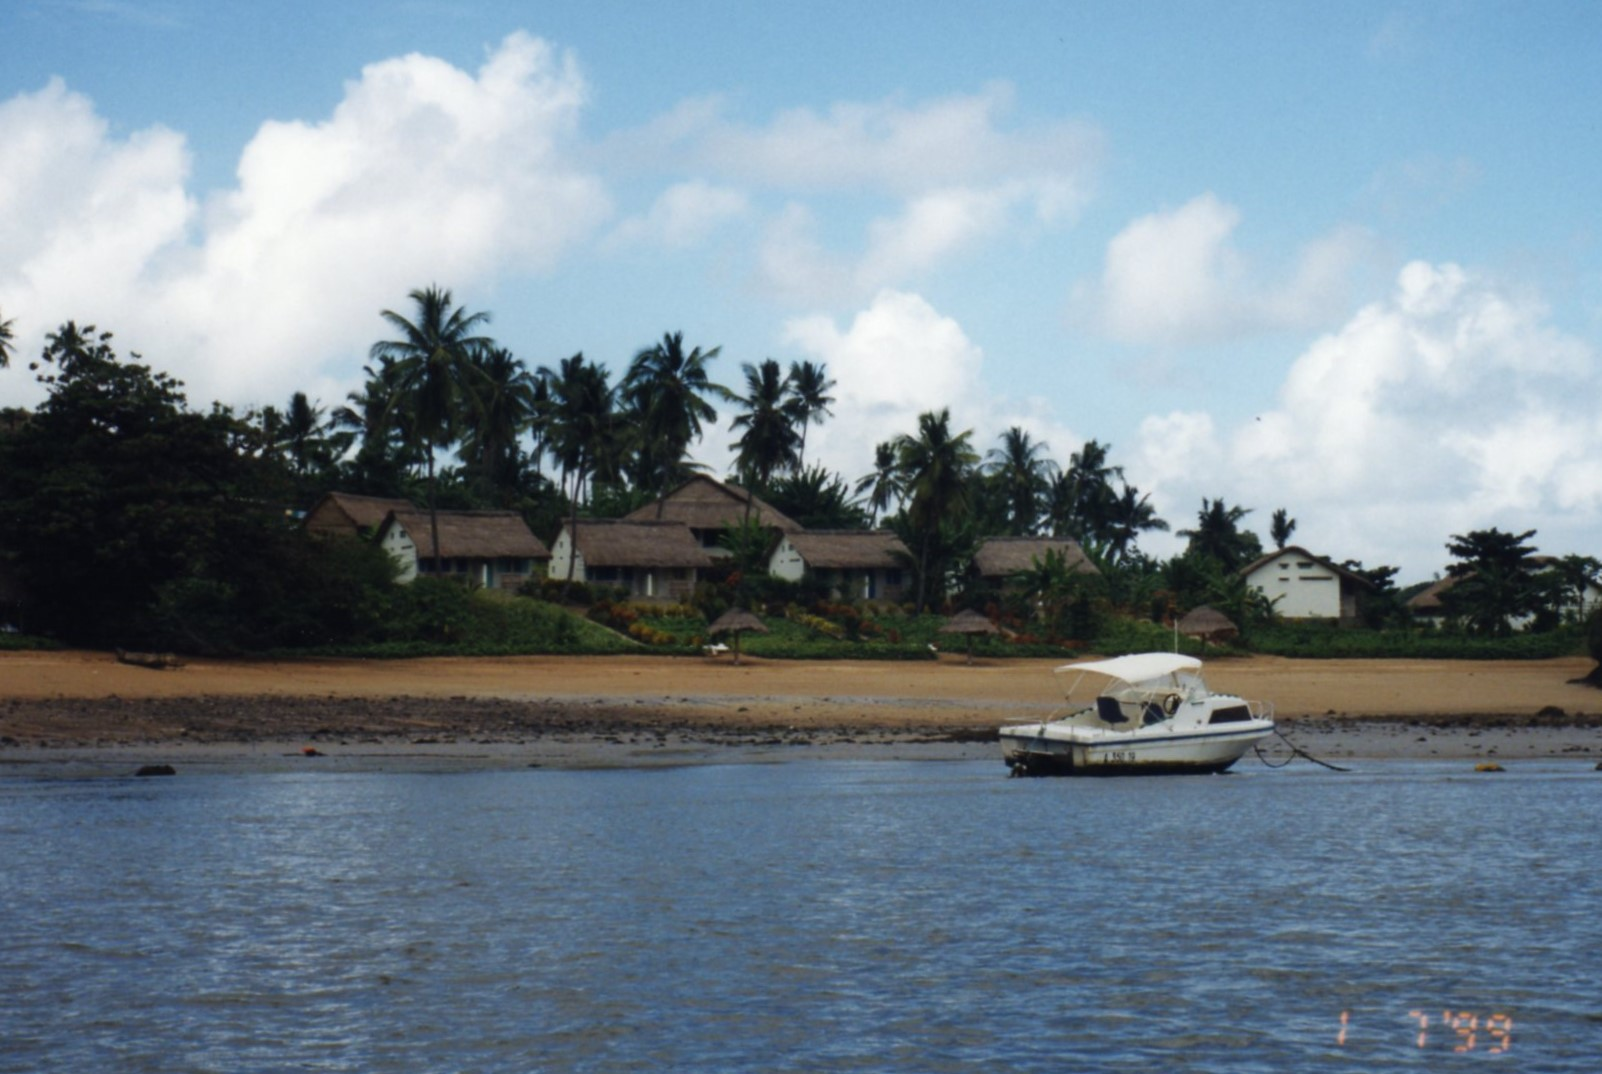 Known as Moheli Bungalows in 1999